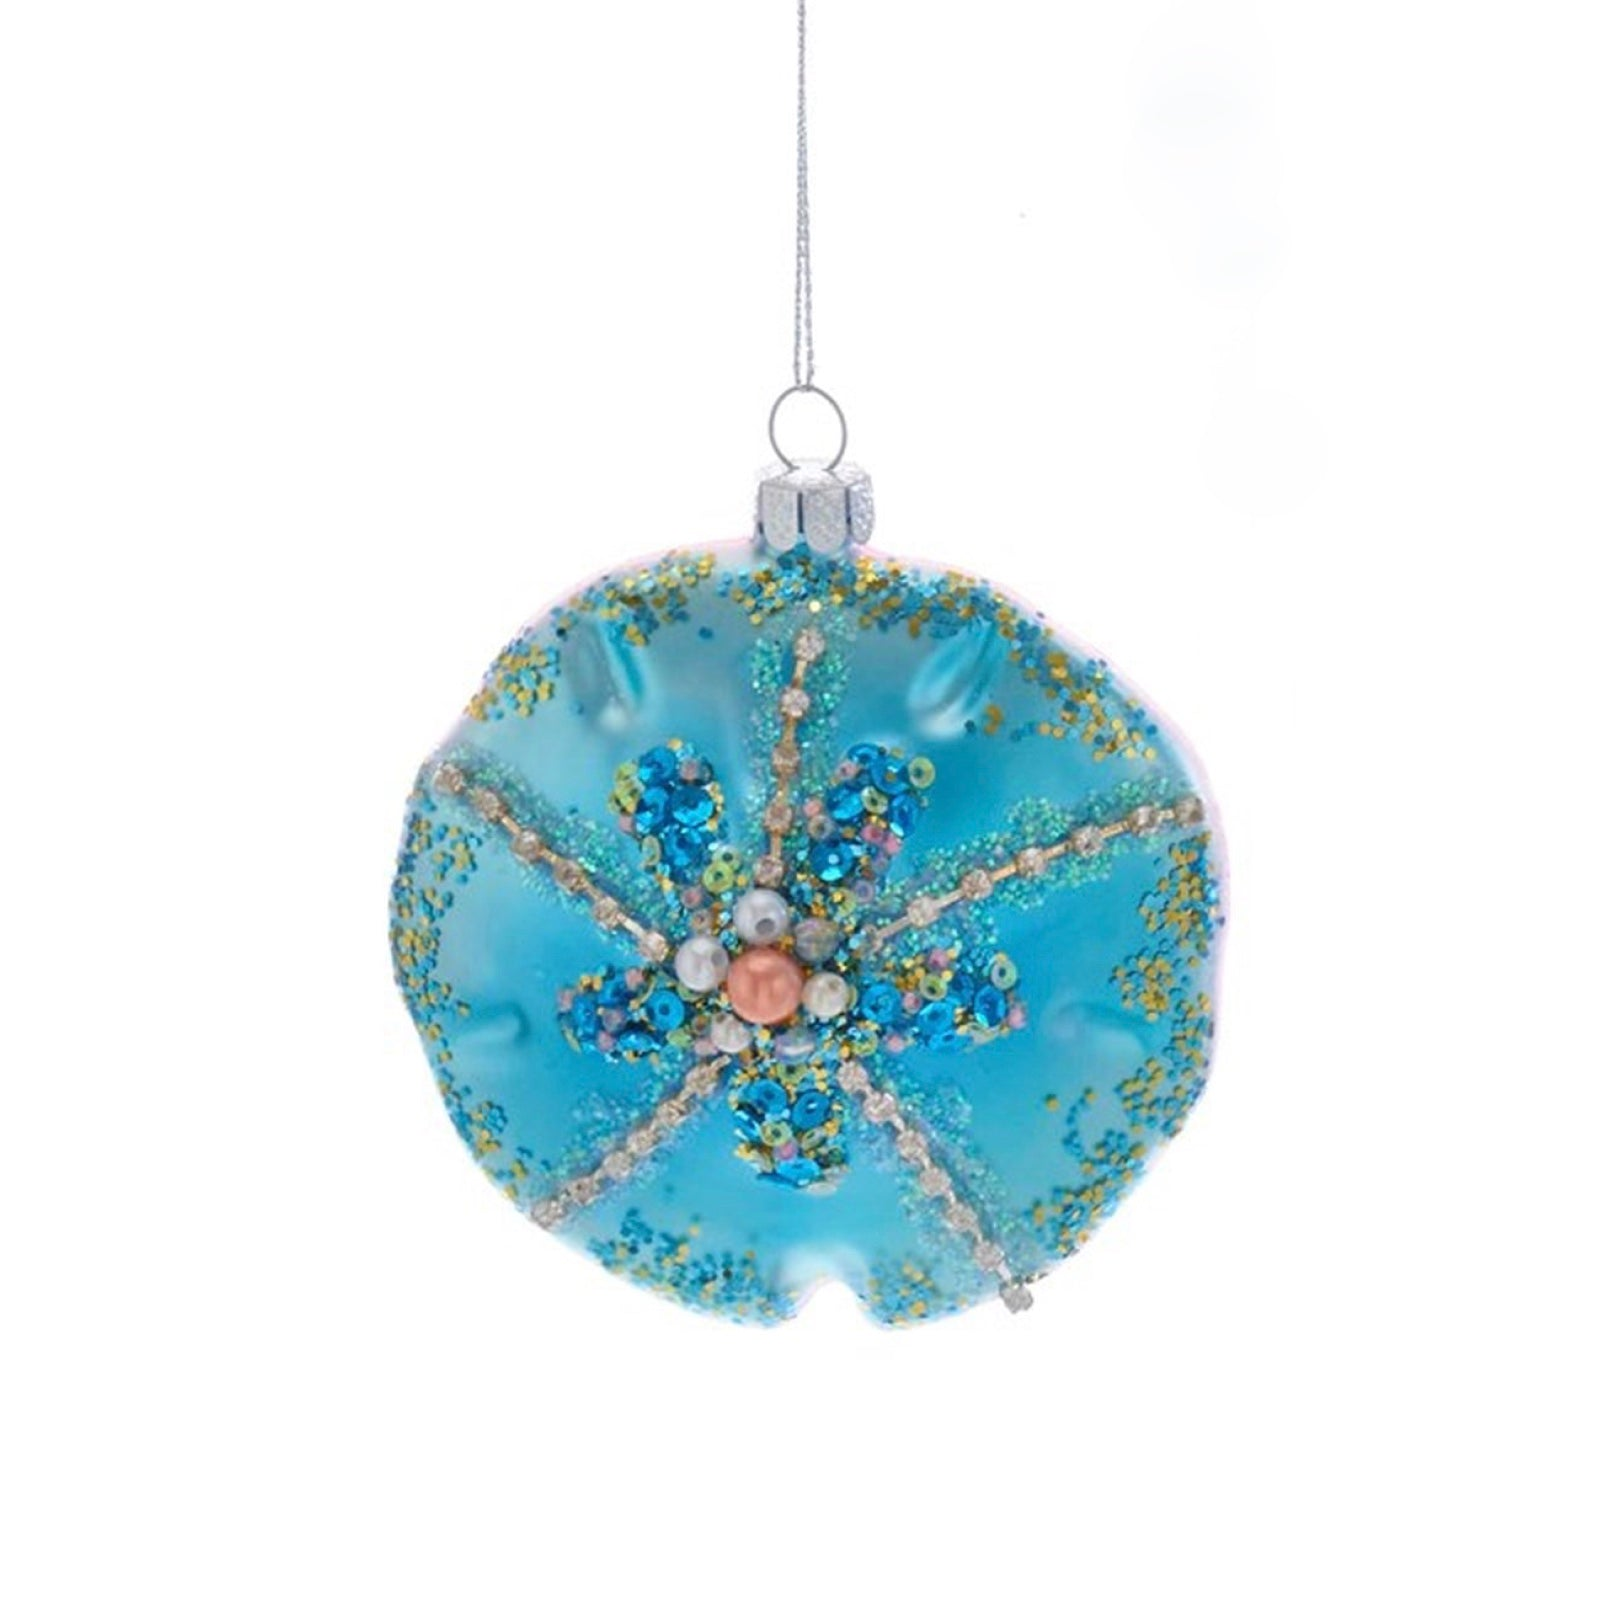 Sand Dollar Ornaments & Decorations